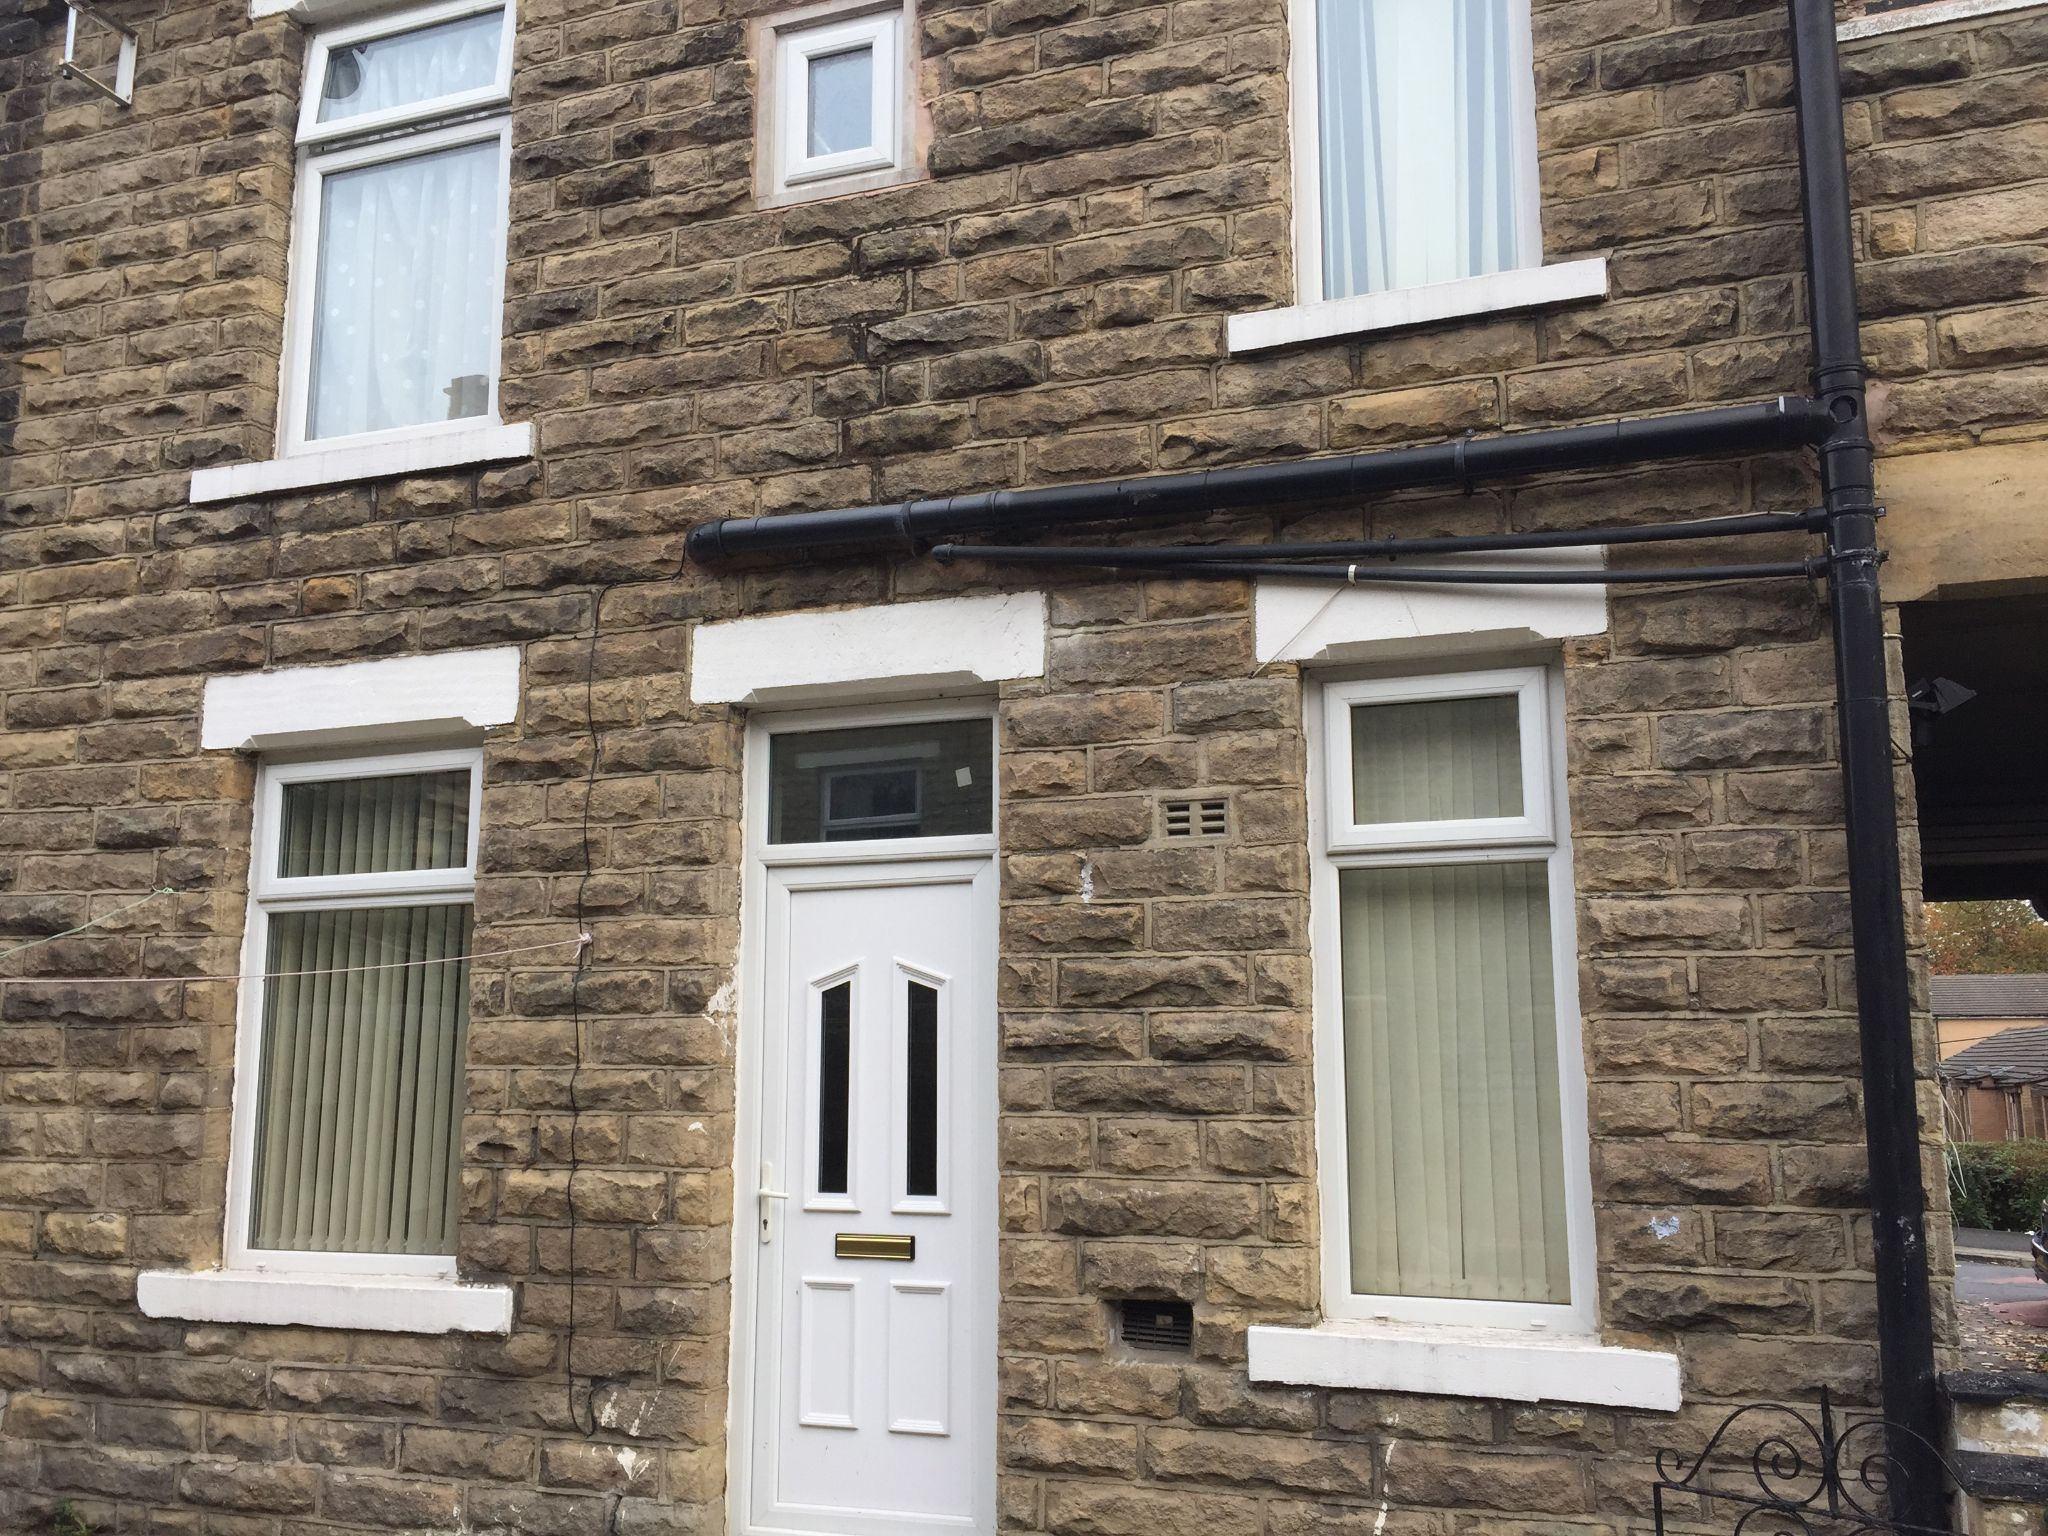 2 bedroom mid terraced house in Bradford - Photograph 1.